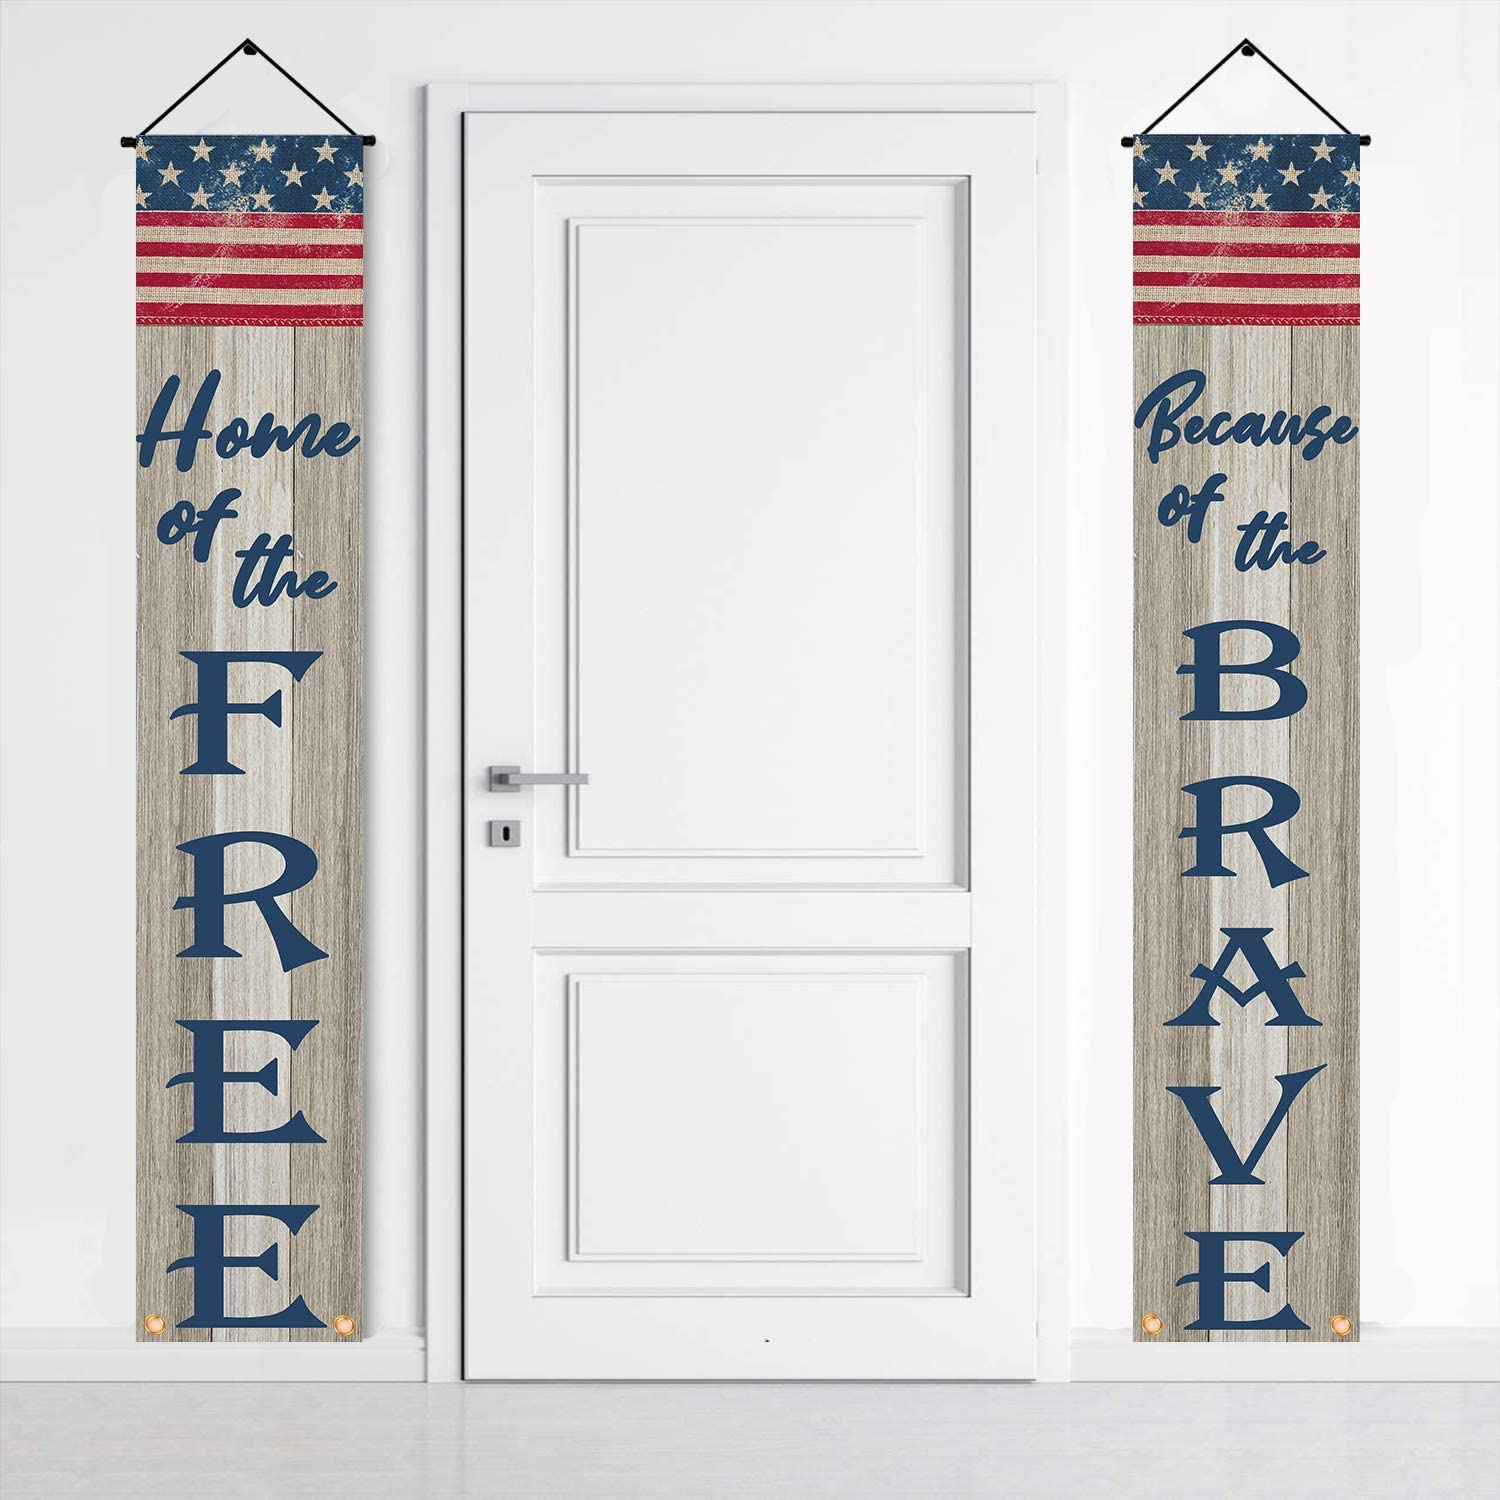 American Flag Home of The Free Because of The Brave Porch Sign Banners,Patriotic Decorations for 4th of July Veterans Day Memorial Day Yard Indoor Outdoor Decor